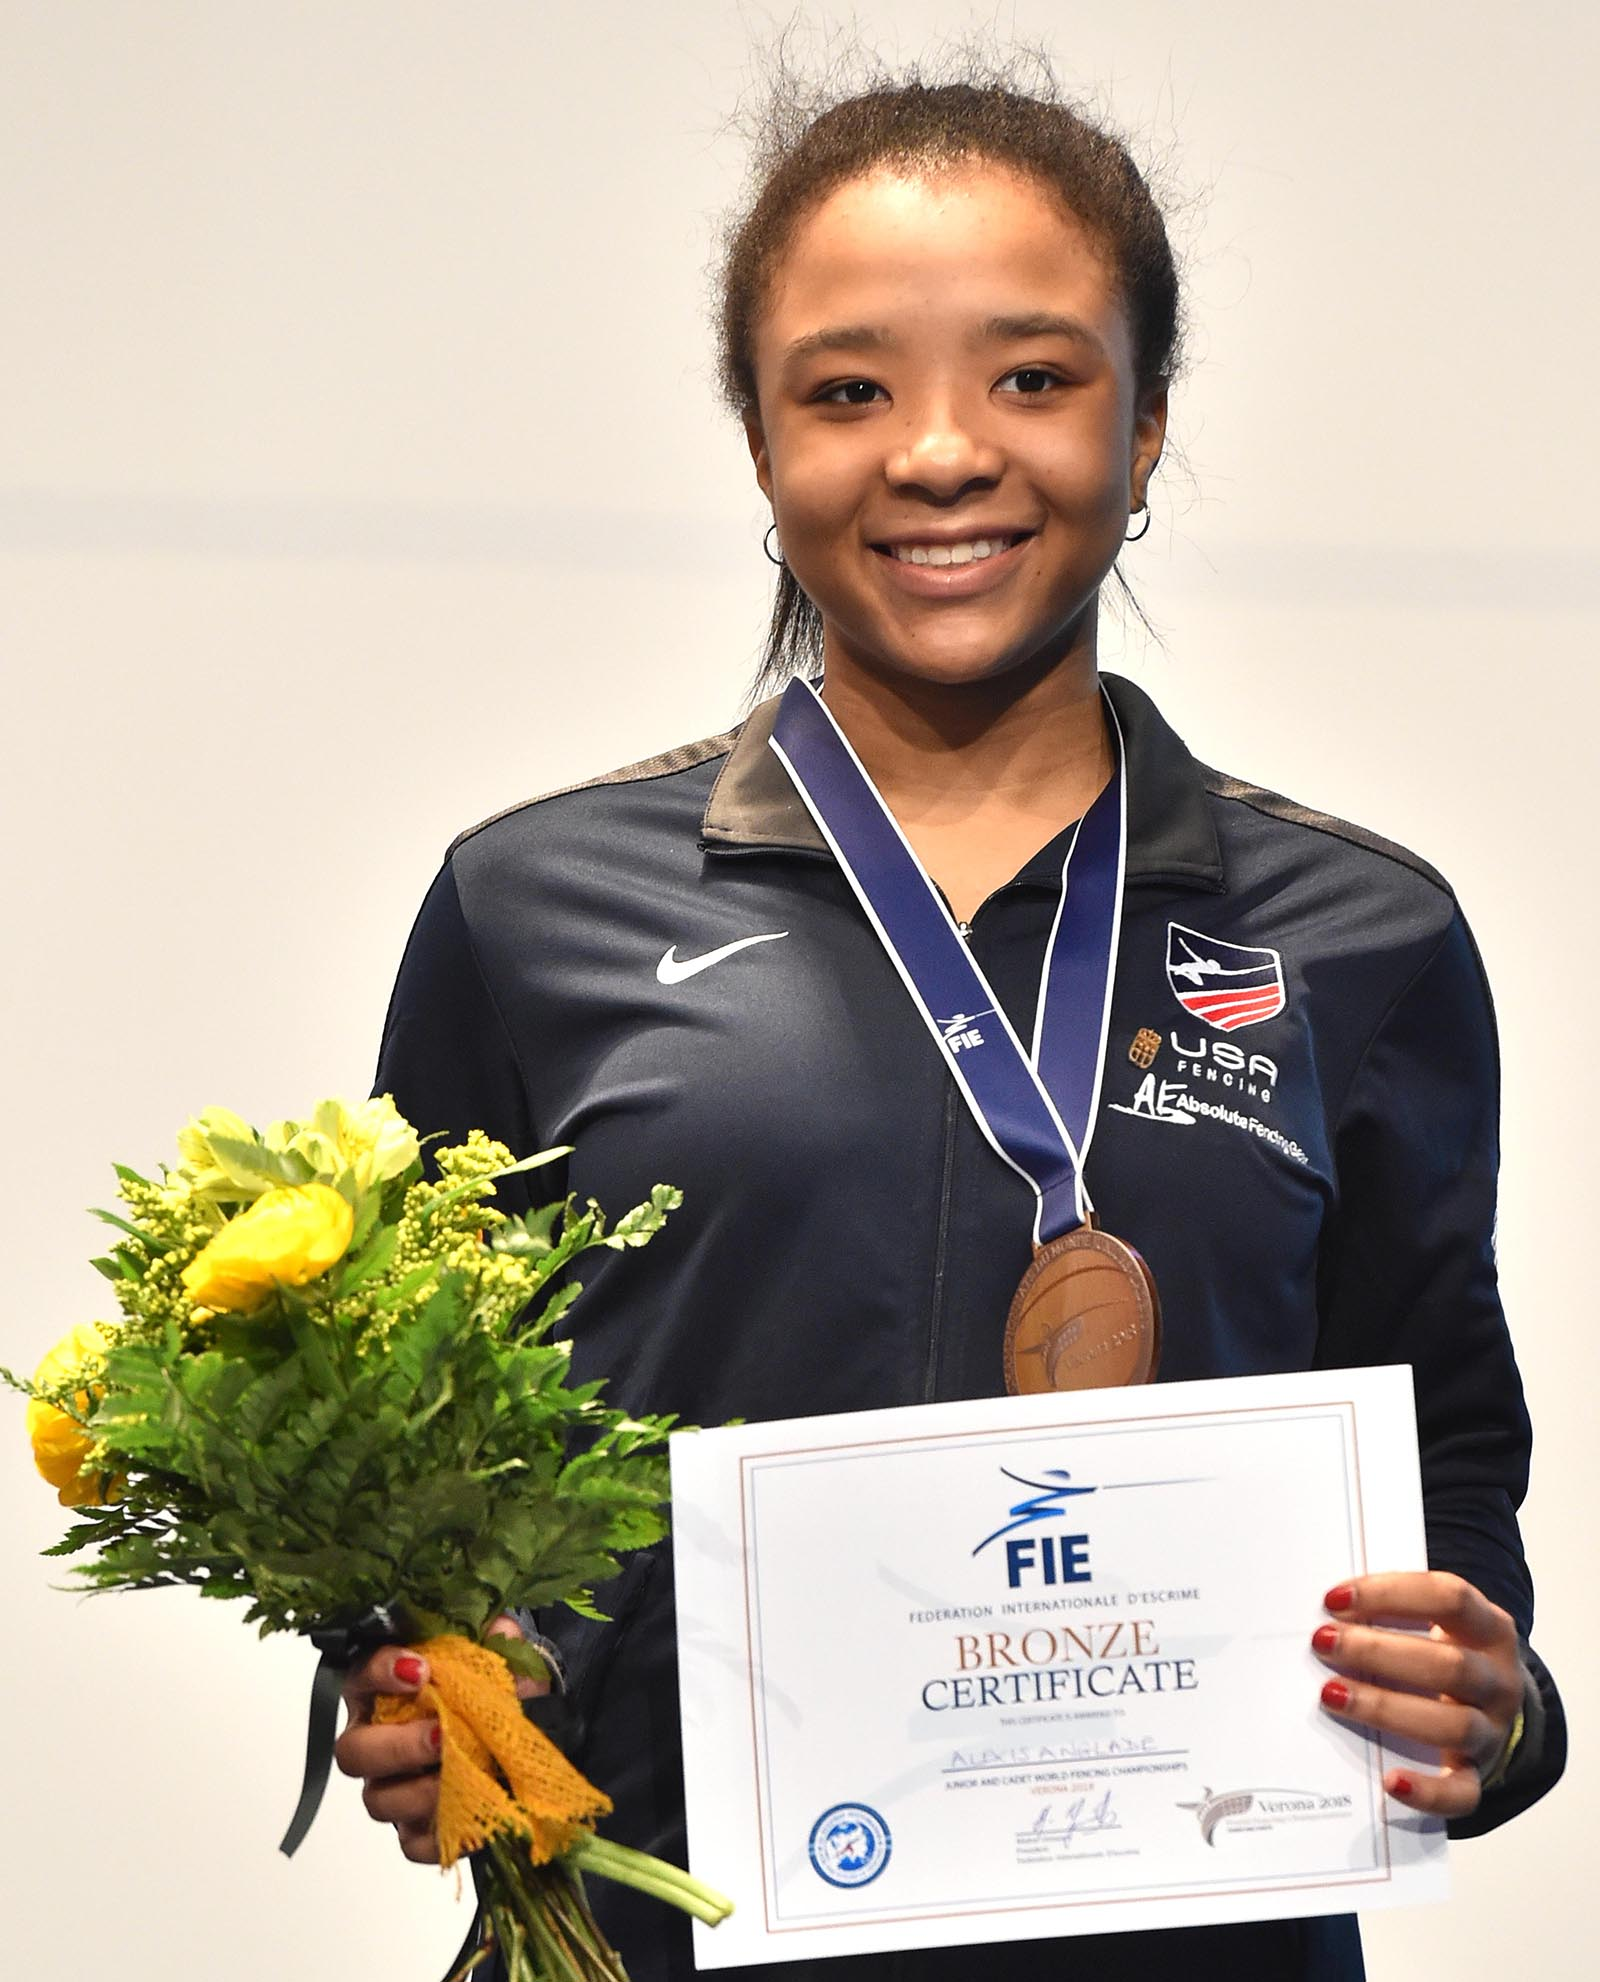 Junior Wins Bronze at World Fencing Championship